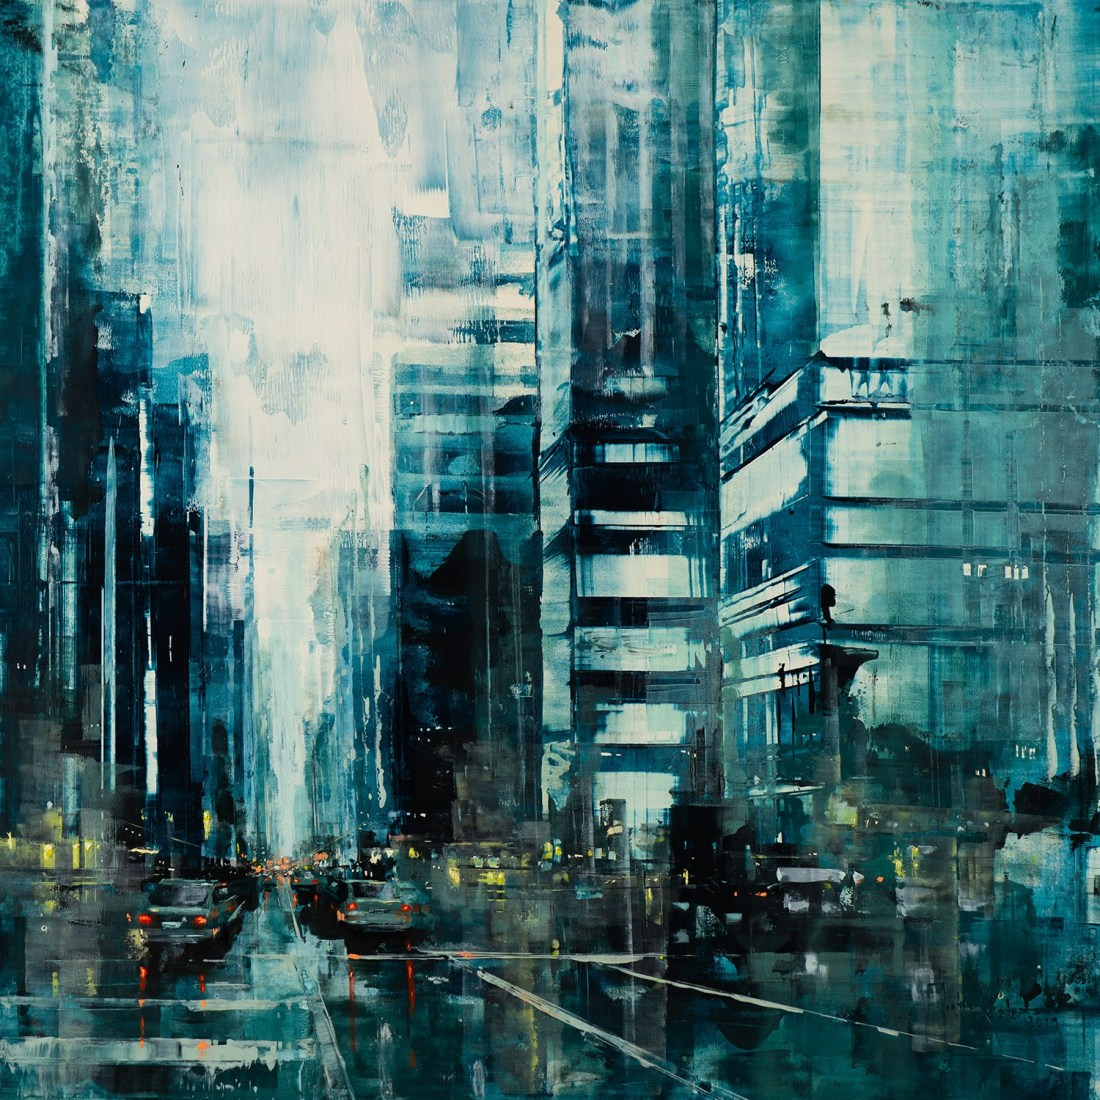 Martin Köster, Hong Kong noon III, Oil on panel, Unikat, 2019, 80 x 80 cm